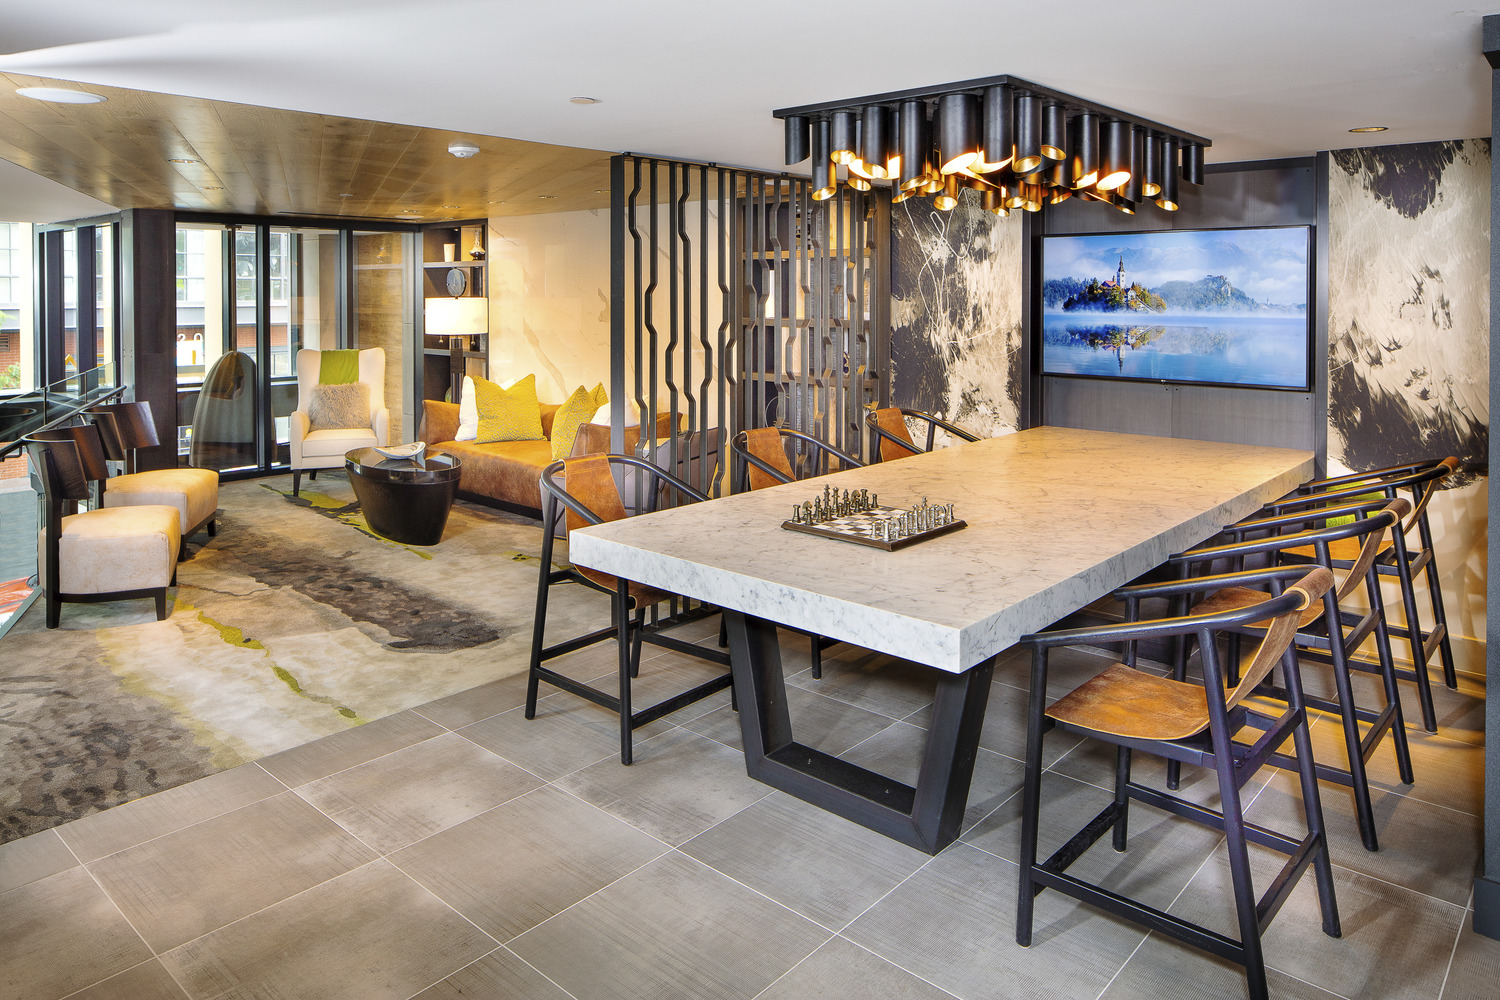 CBG builds J Linea, a 132-Unit LEED®-Certified Community with Ground-Floor Retail in Washington, DC - Image #6